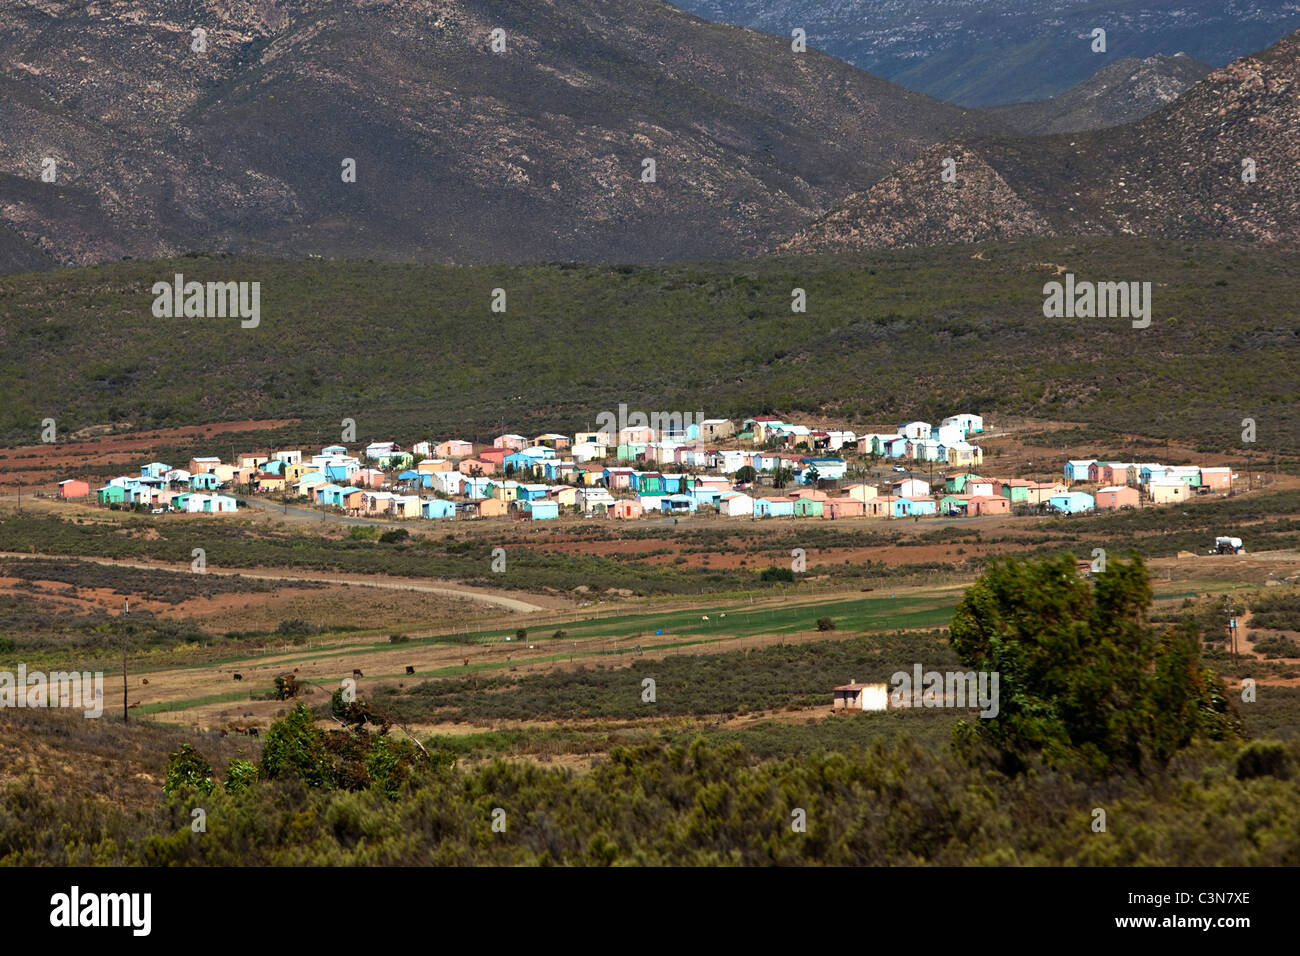 South Africa, Western Cape, Barrydale, Township. - Stock Image